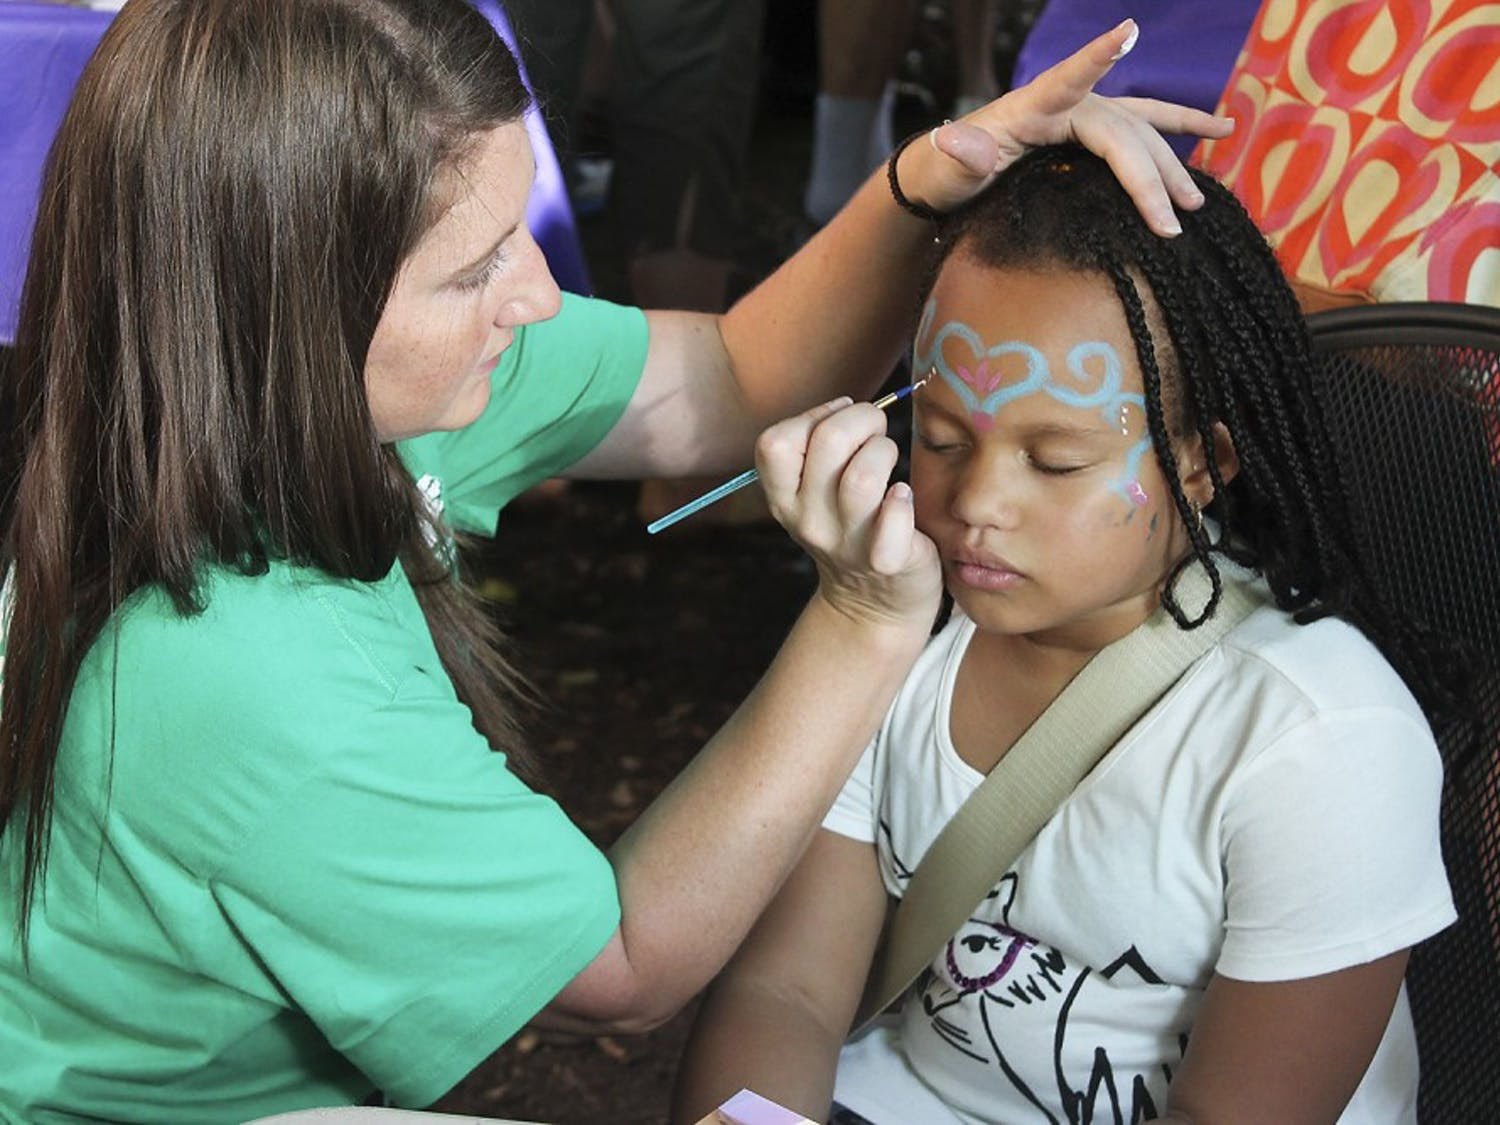 Laila Williams, eight years old, gets her face painted at the Weaver Street Co-Op Fair in Carborro.